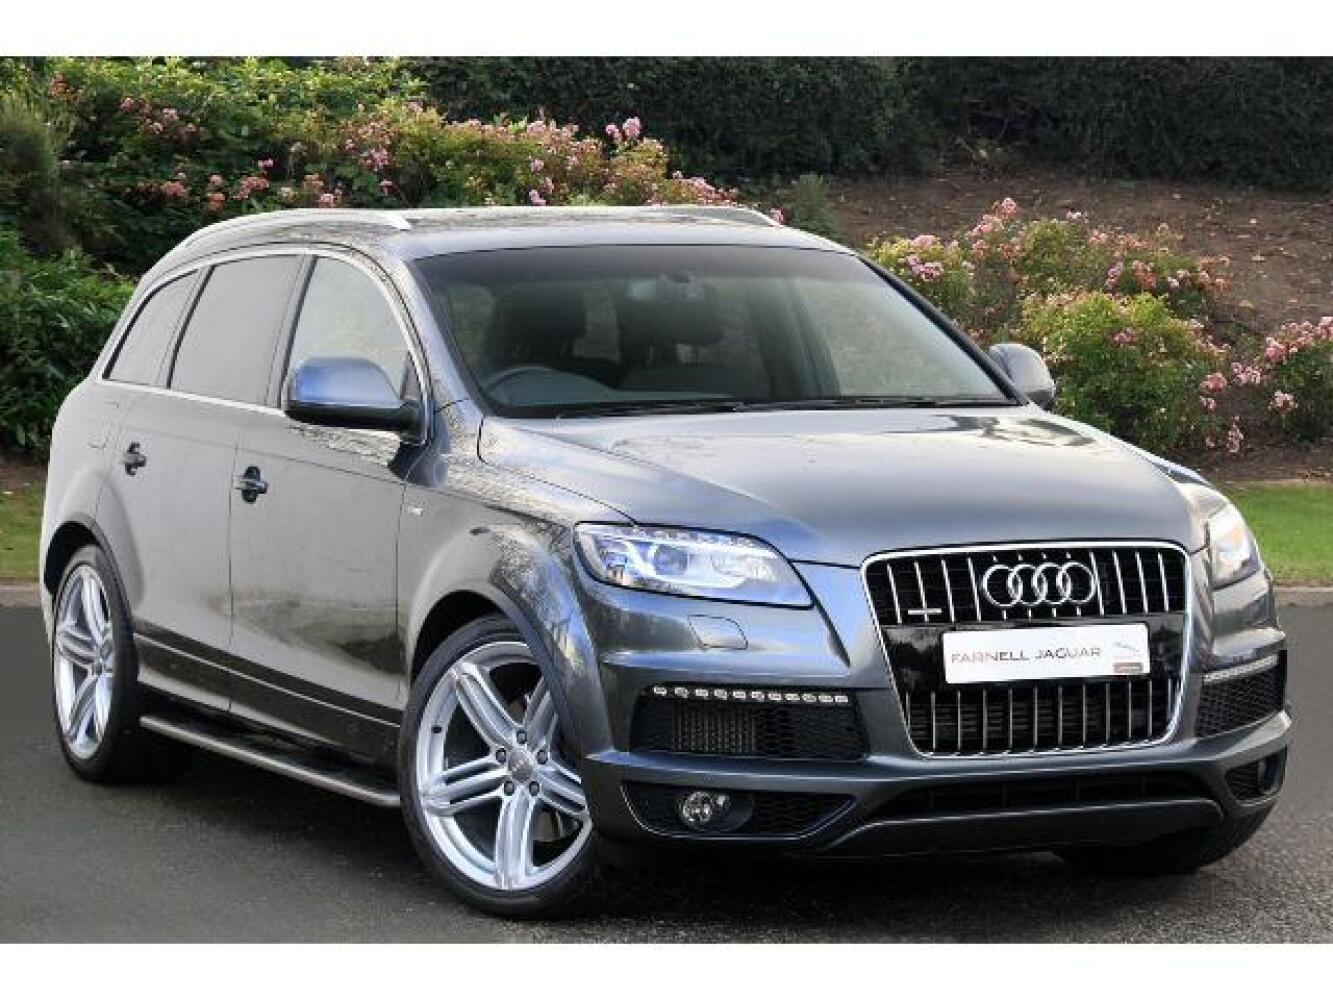 used audi q7 3 0 tdi 245 quattro s line plus 5dr tip auto diesel estate for sale farnell jaguar. Black Bedroom Furniture Sets. Home Design Ideas